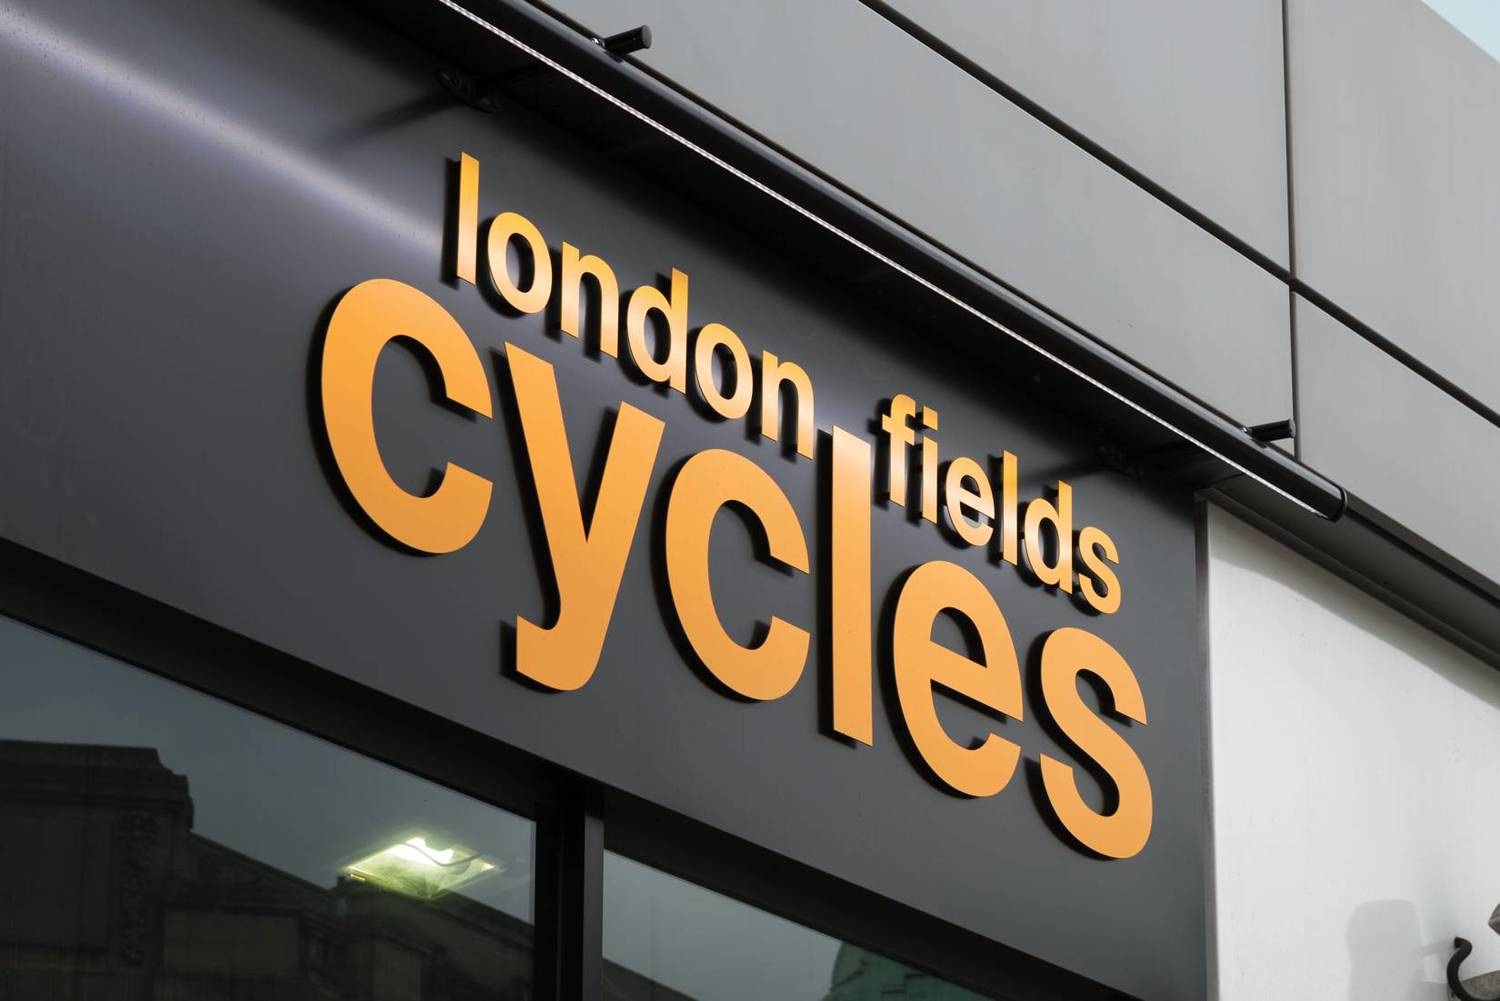 London Fields Cycles, E8